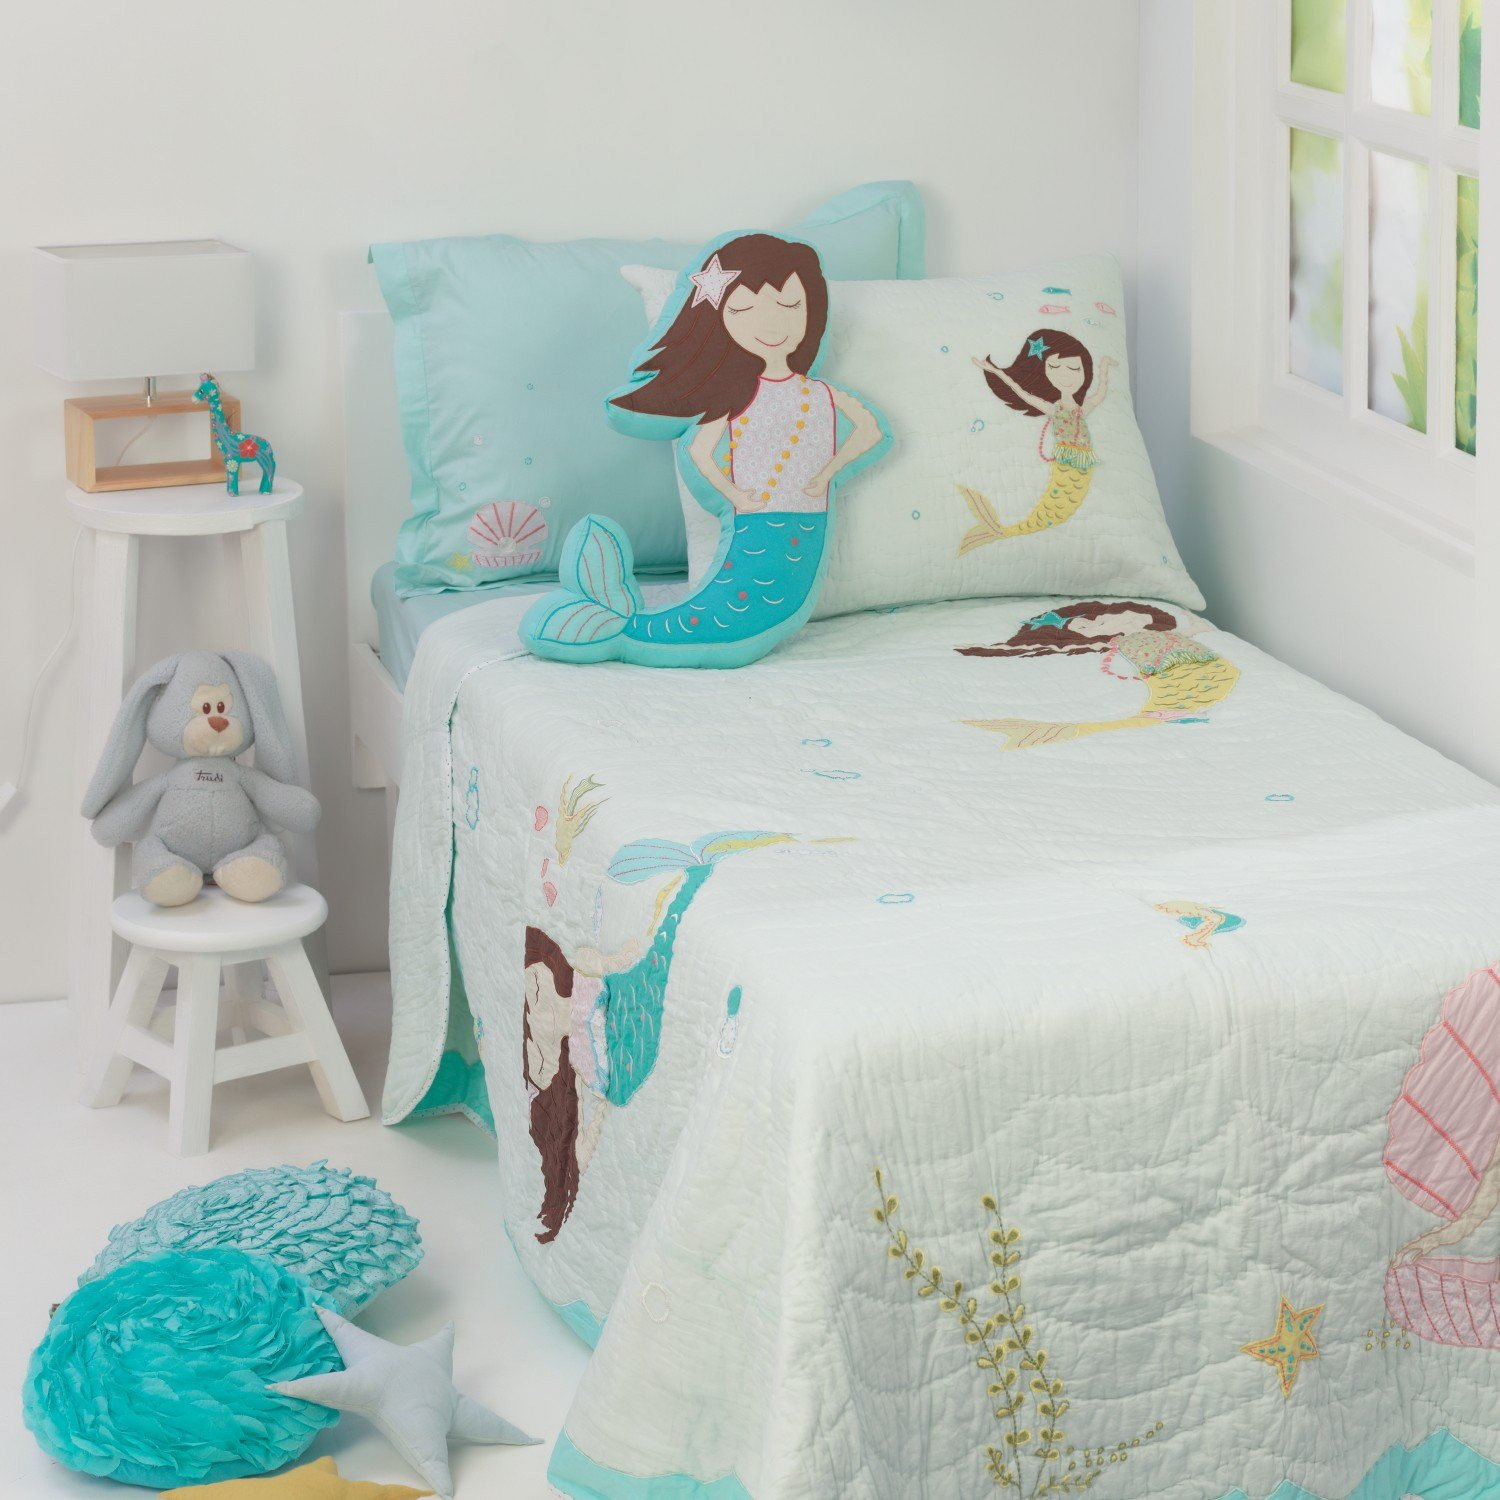 Mermaid Decor for Kids Room Awesome Magical Mermaids Kids Bedding Set Kid Room Decor